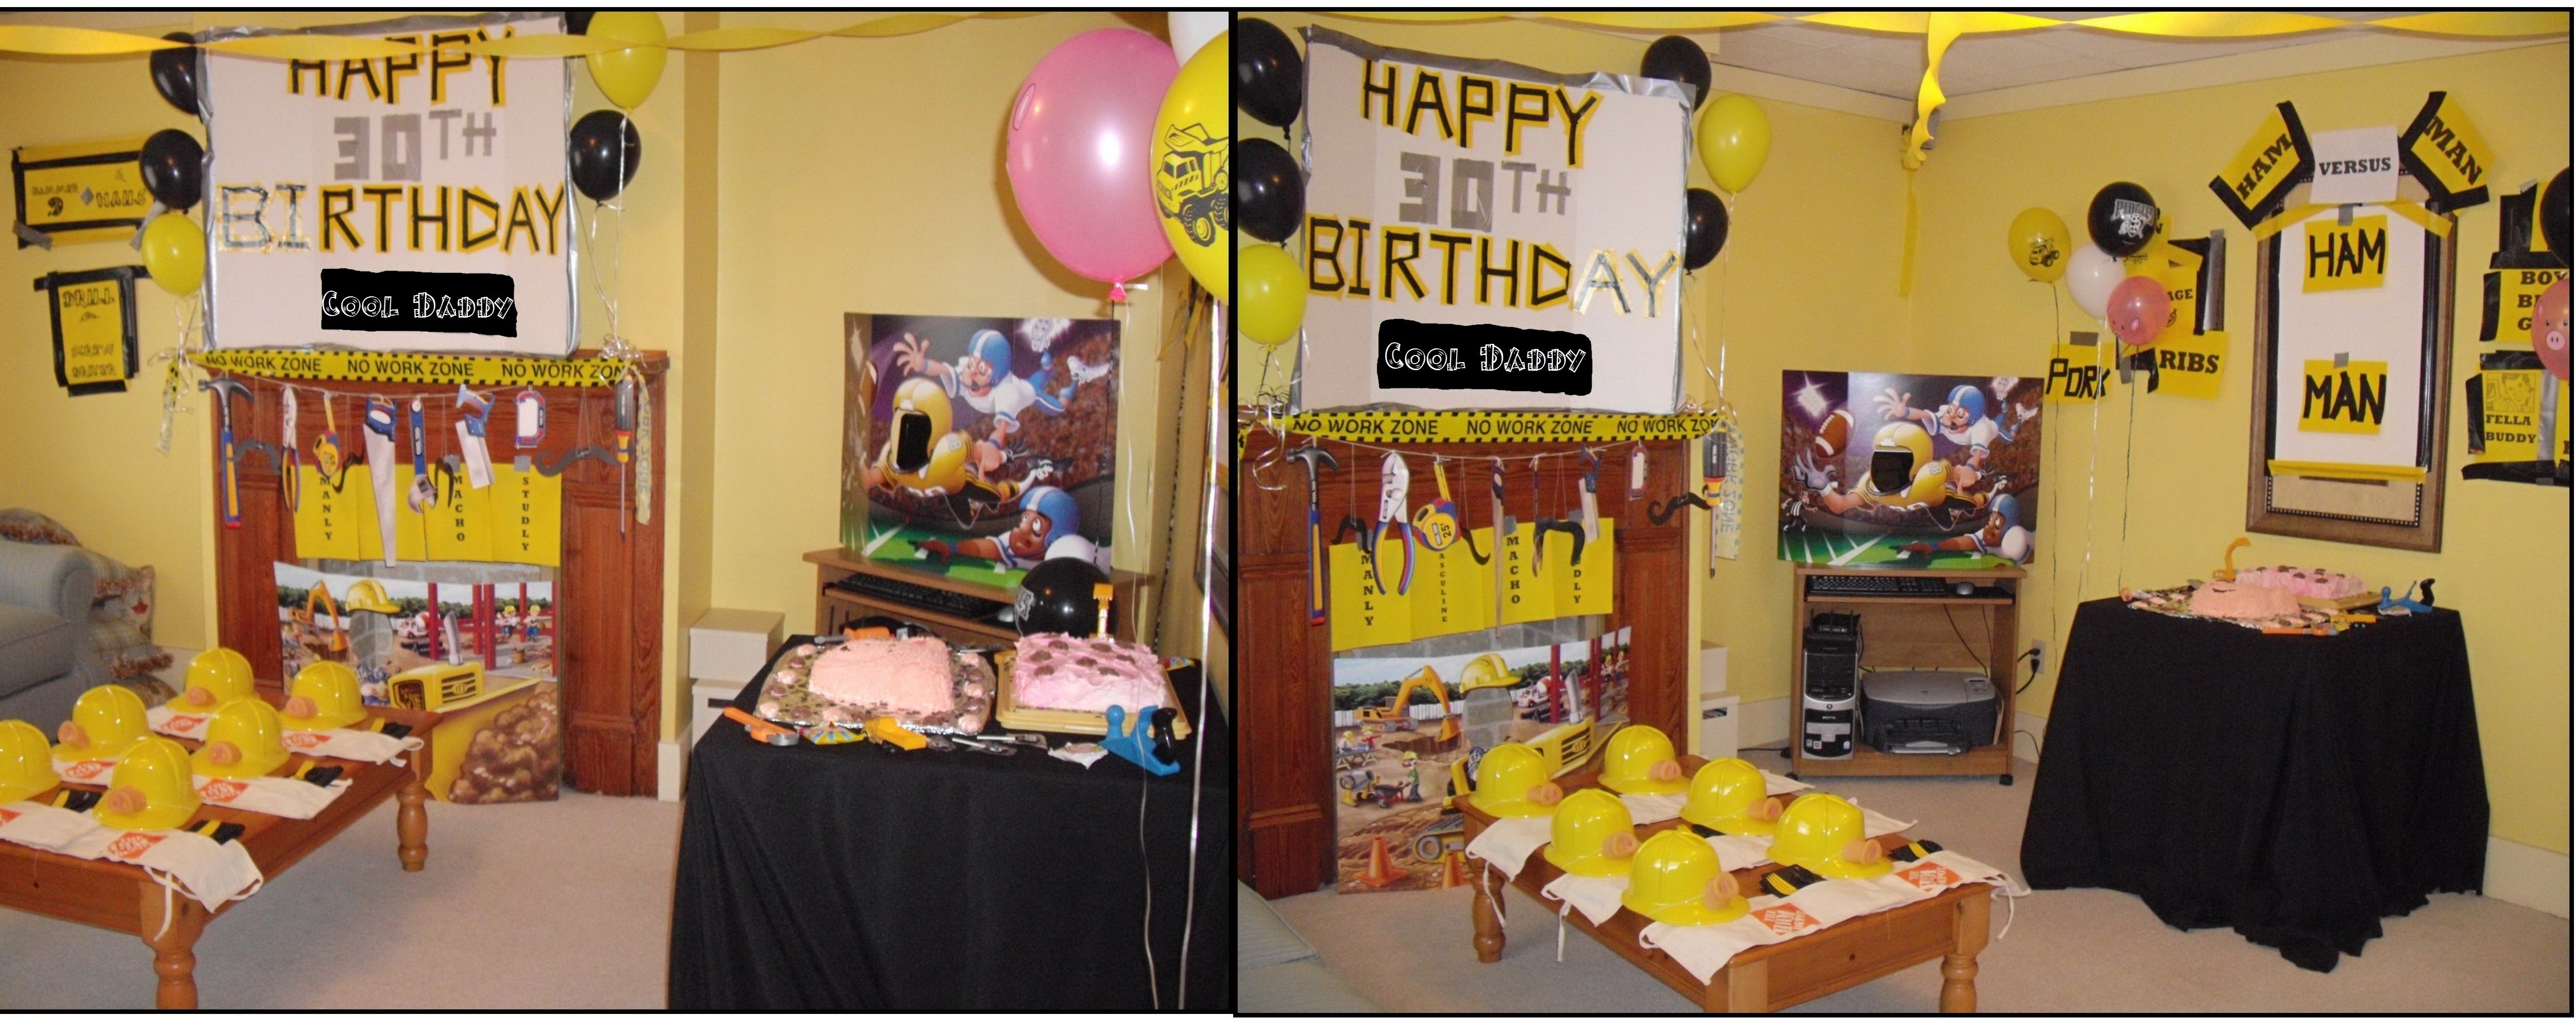 10 Ideal 30 Year Old Birthday Ideas Ham And Man Party Cool Daddys 30th Coolest